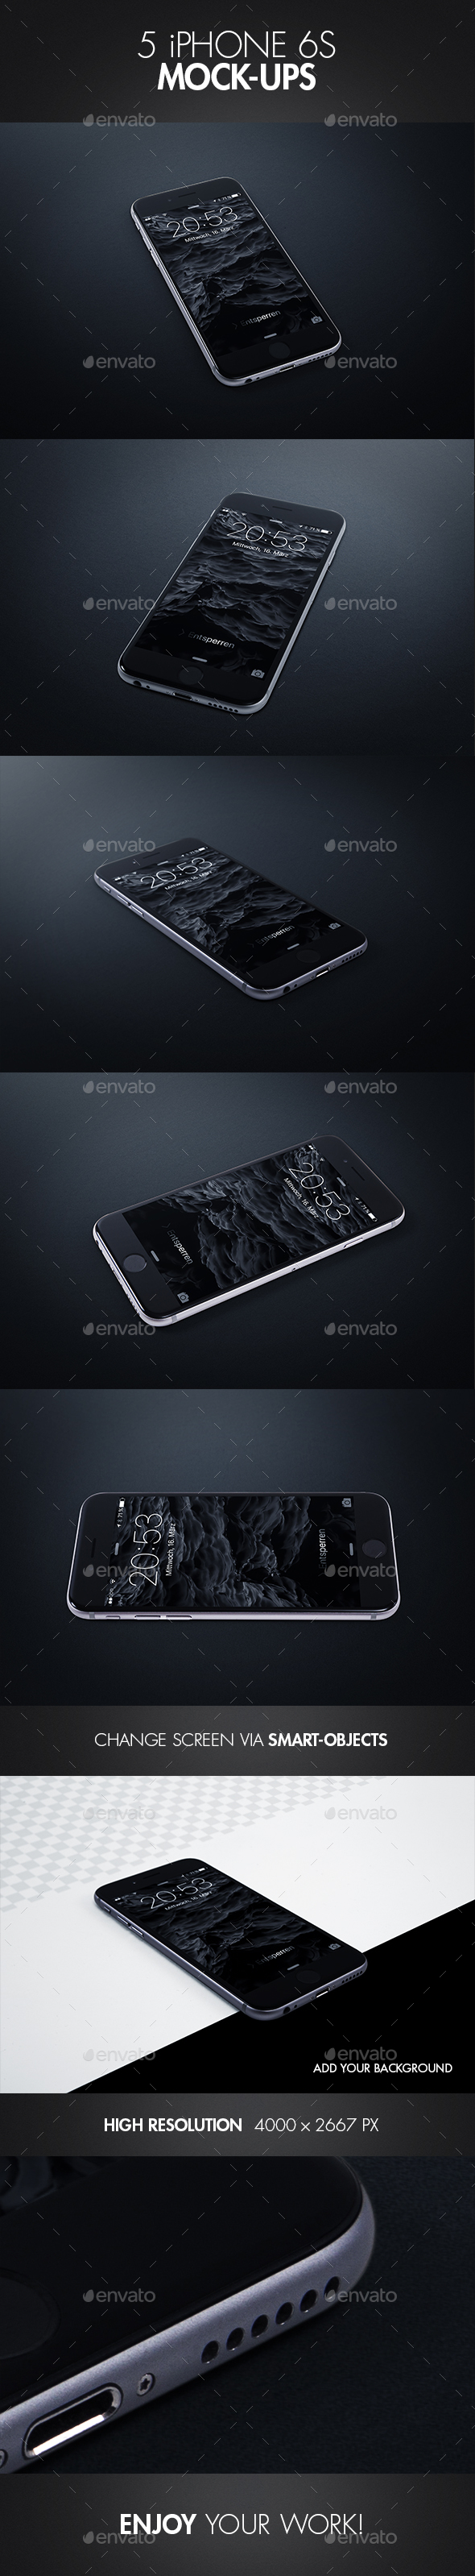 5 iPhone 6s Mock-Ups - Mobile Displays